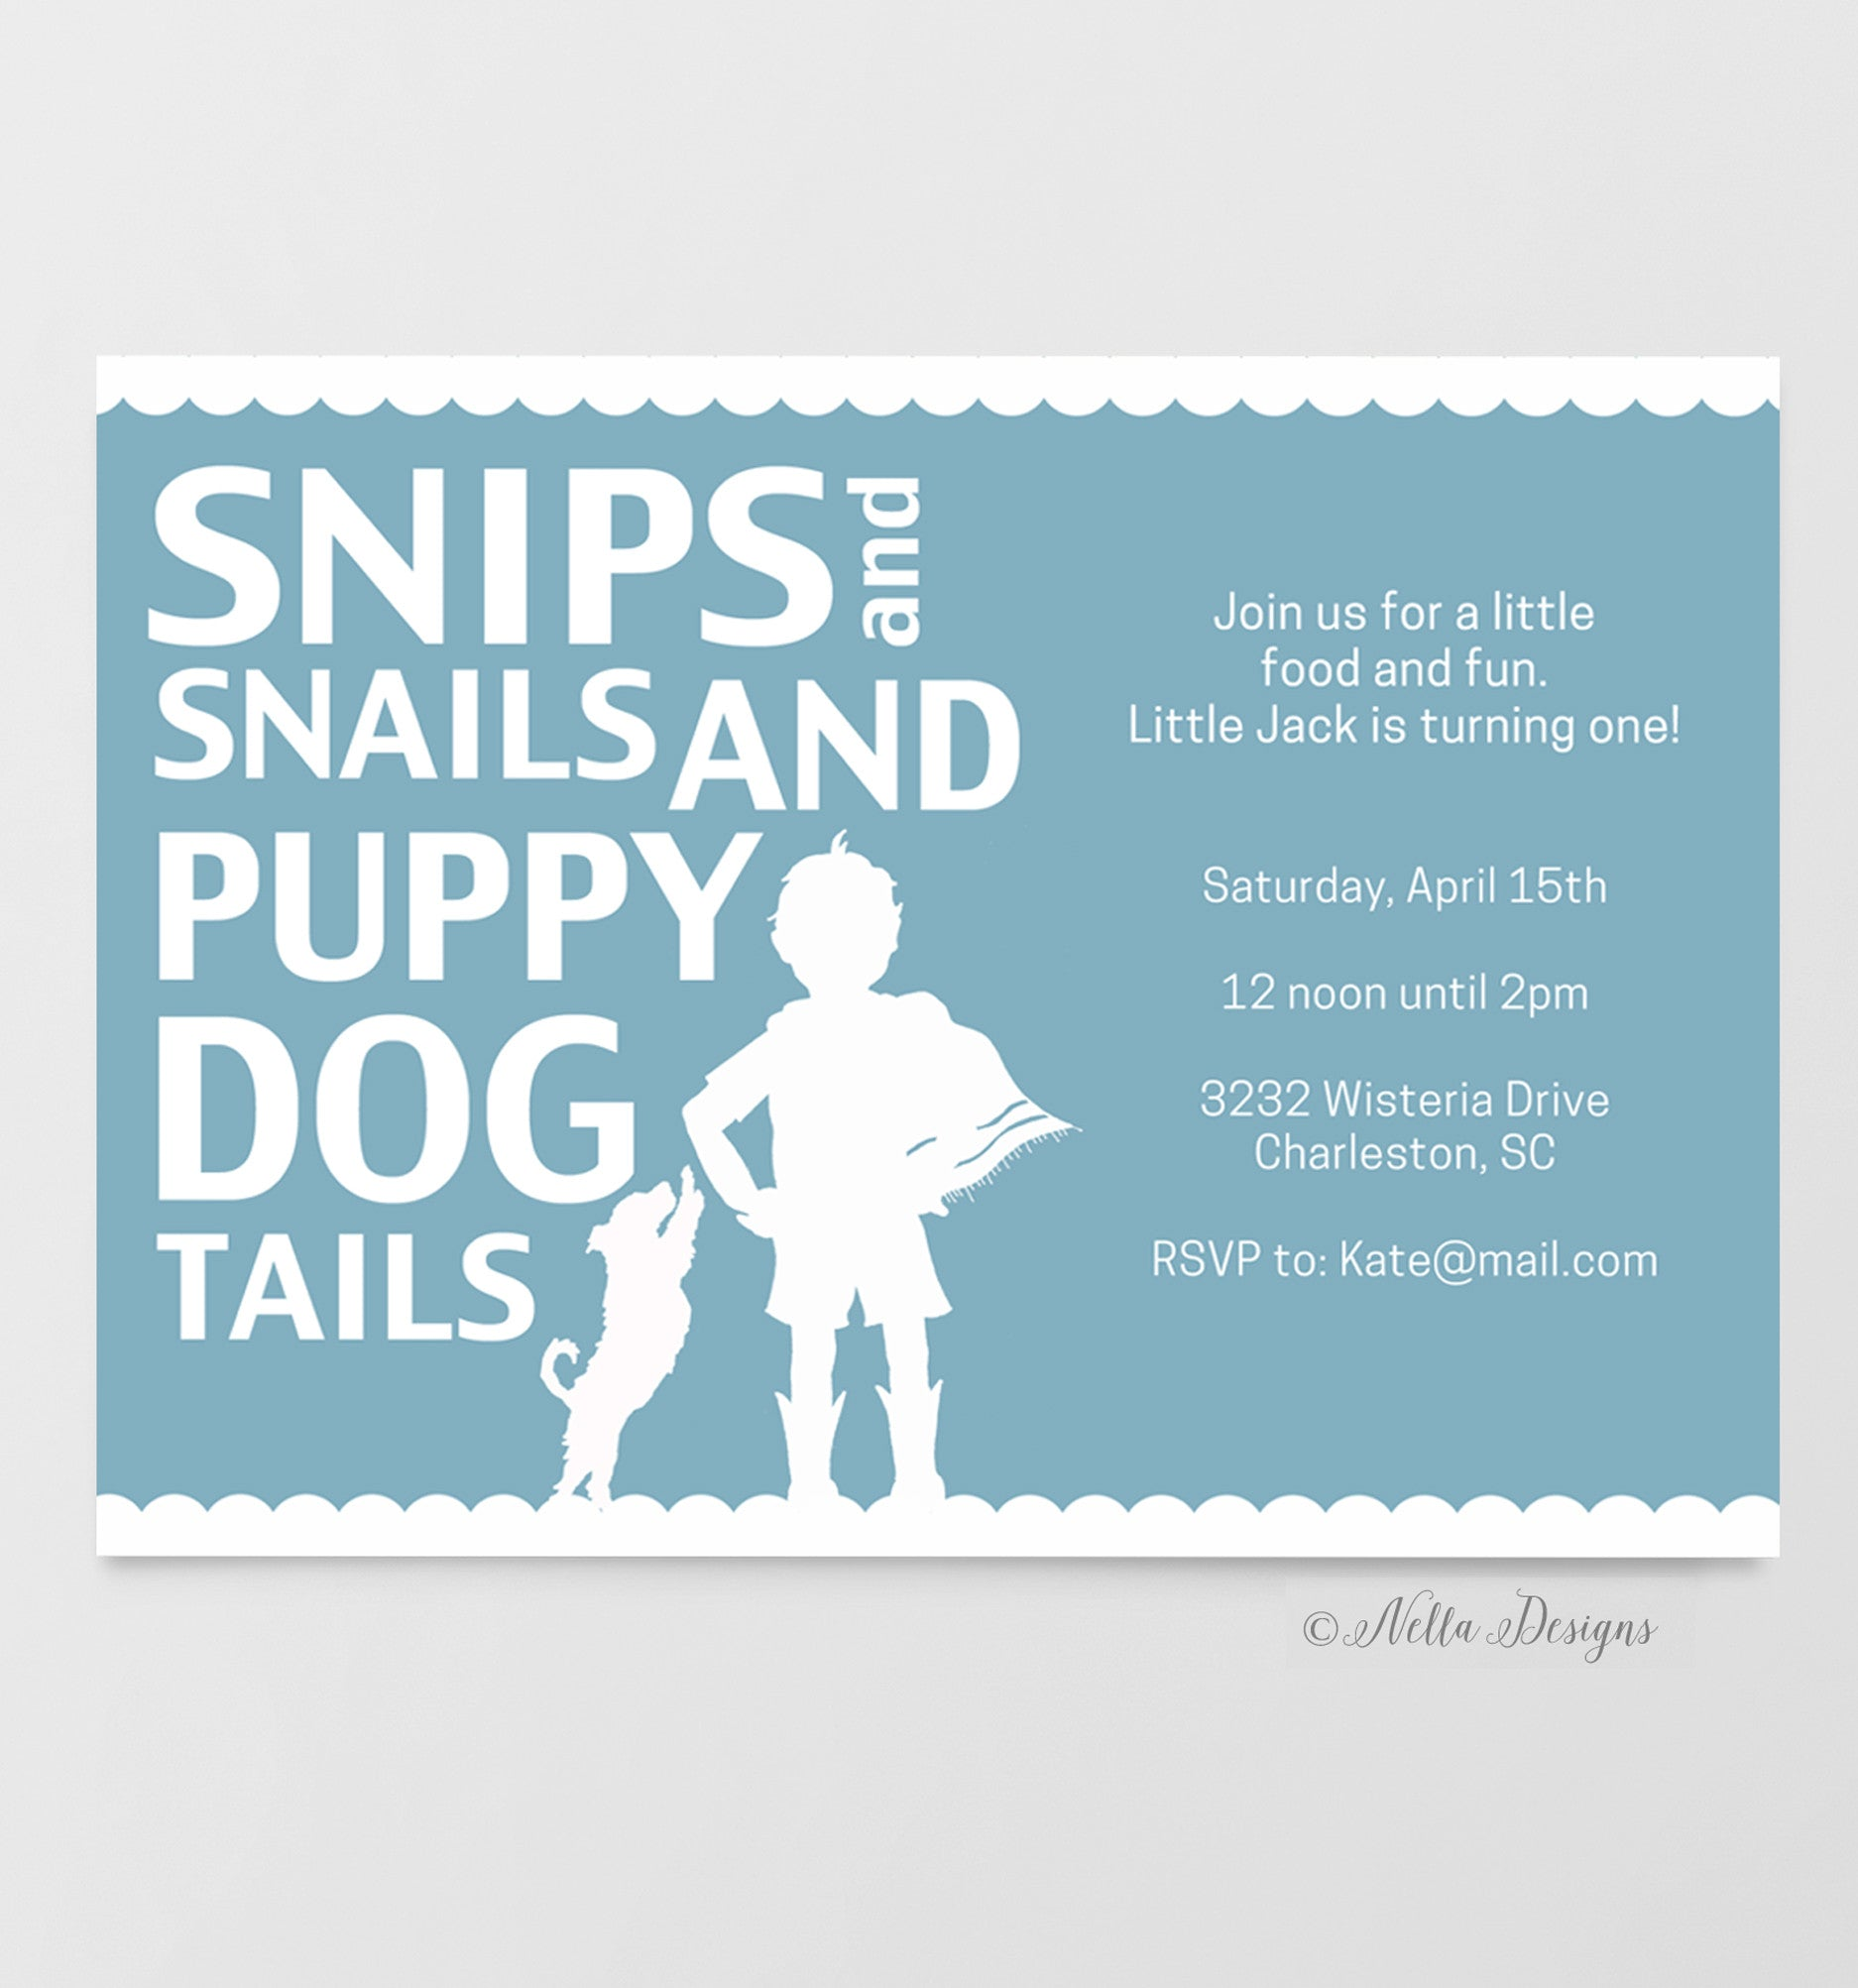 snips and snails birthday party invitations, baby shower invitations ...